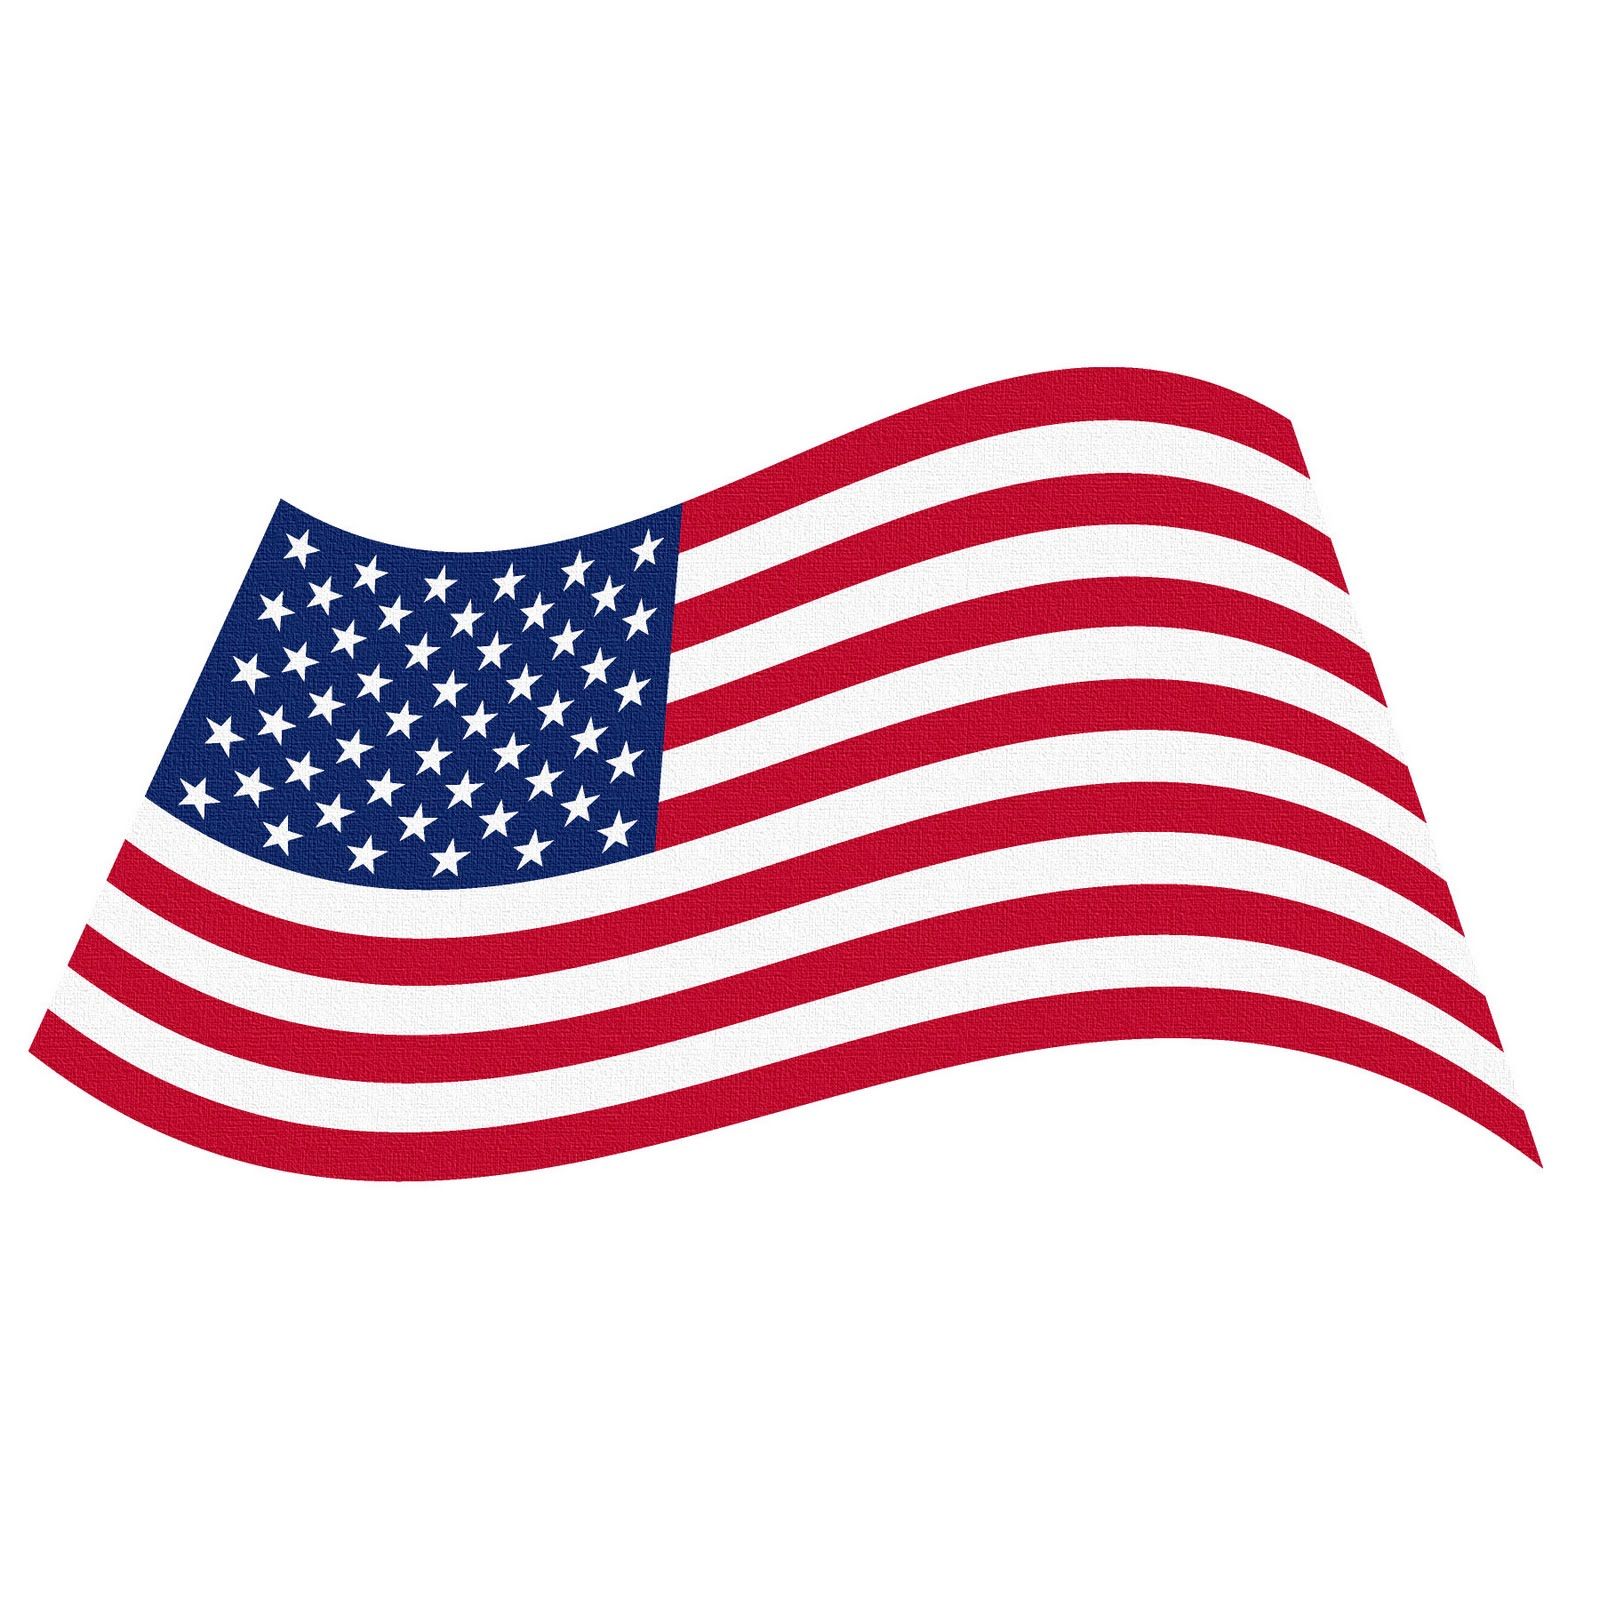 microsoft clipart 4th of july - photo #19